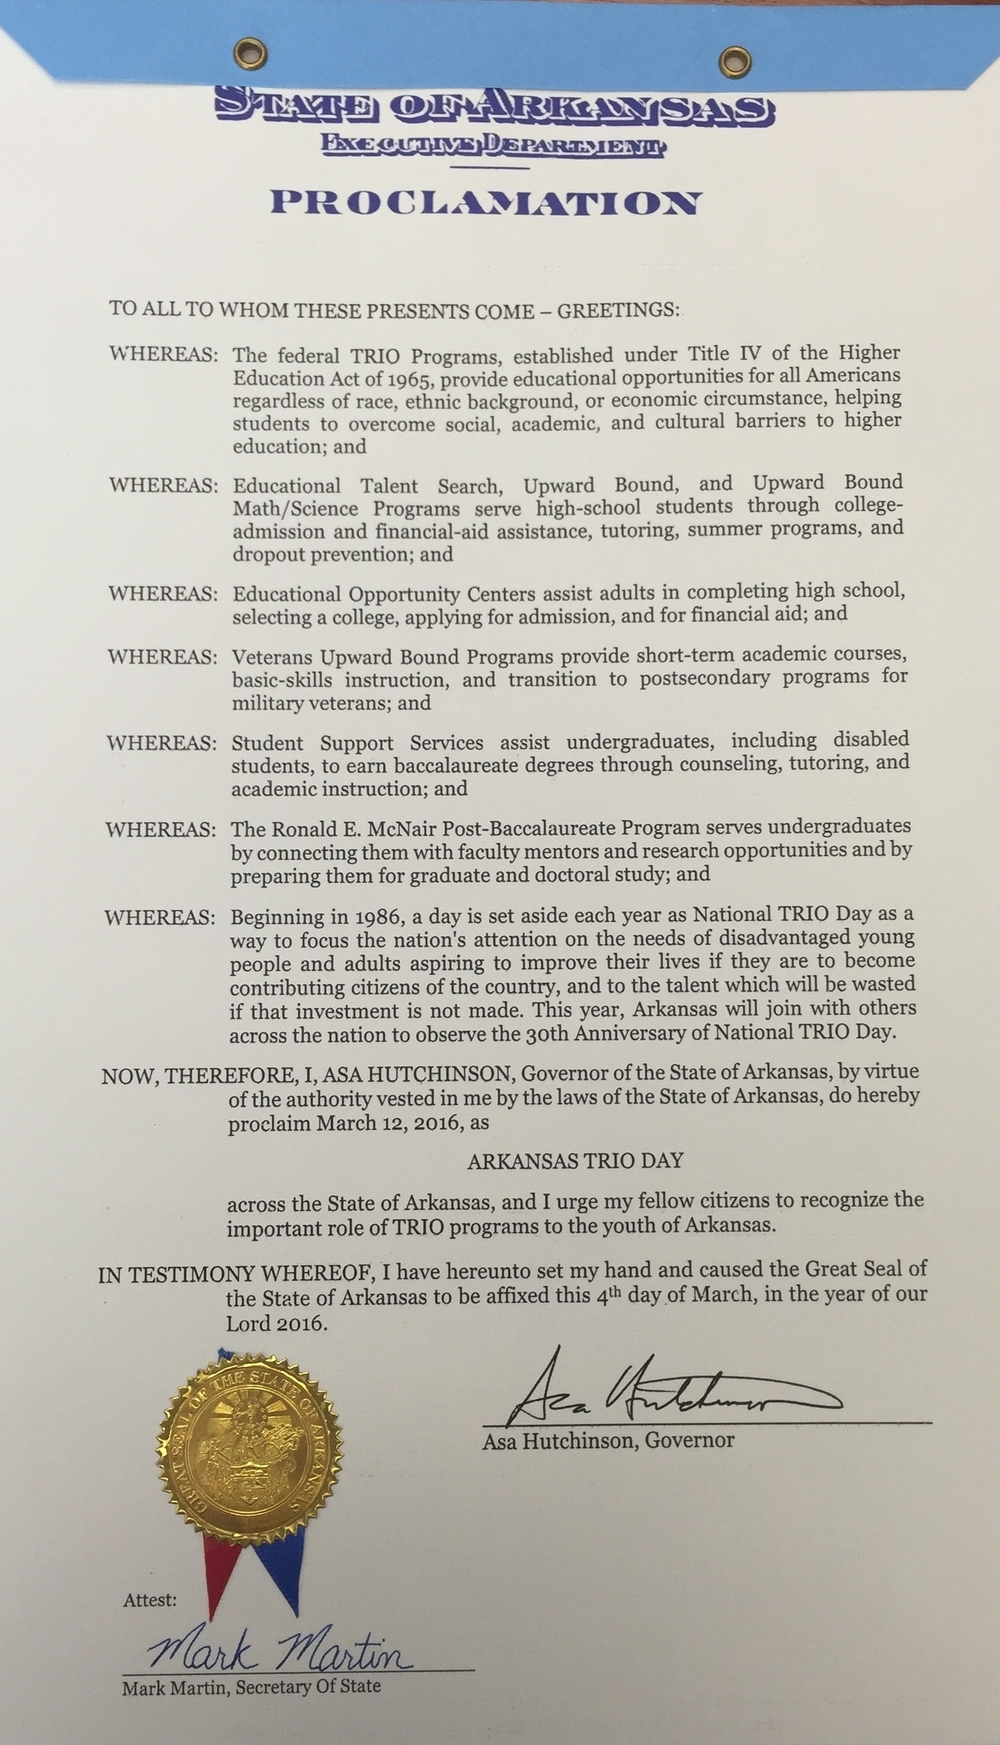 Official 2016 Arkansas TRIO Day Proclamation